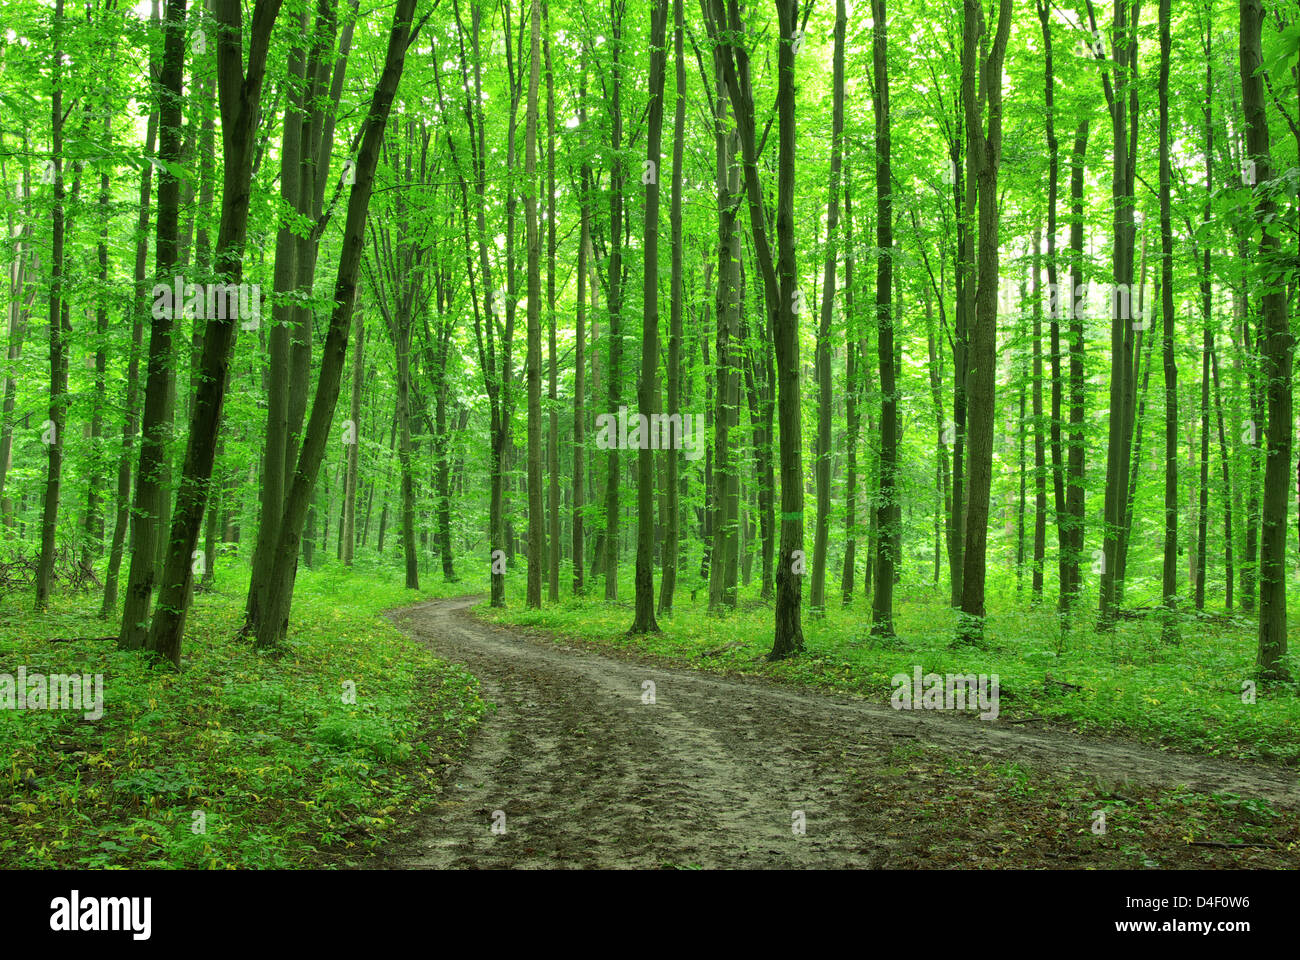 Forest Trees Nature Green Wood Backgrounds Stock Photo